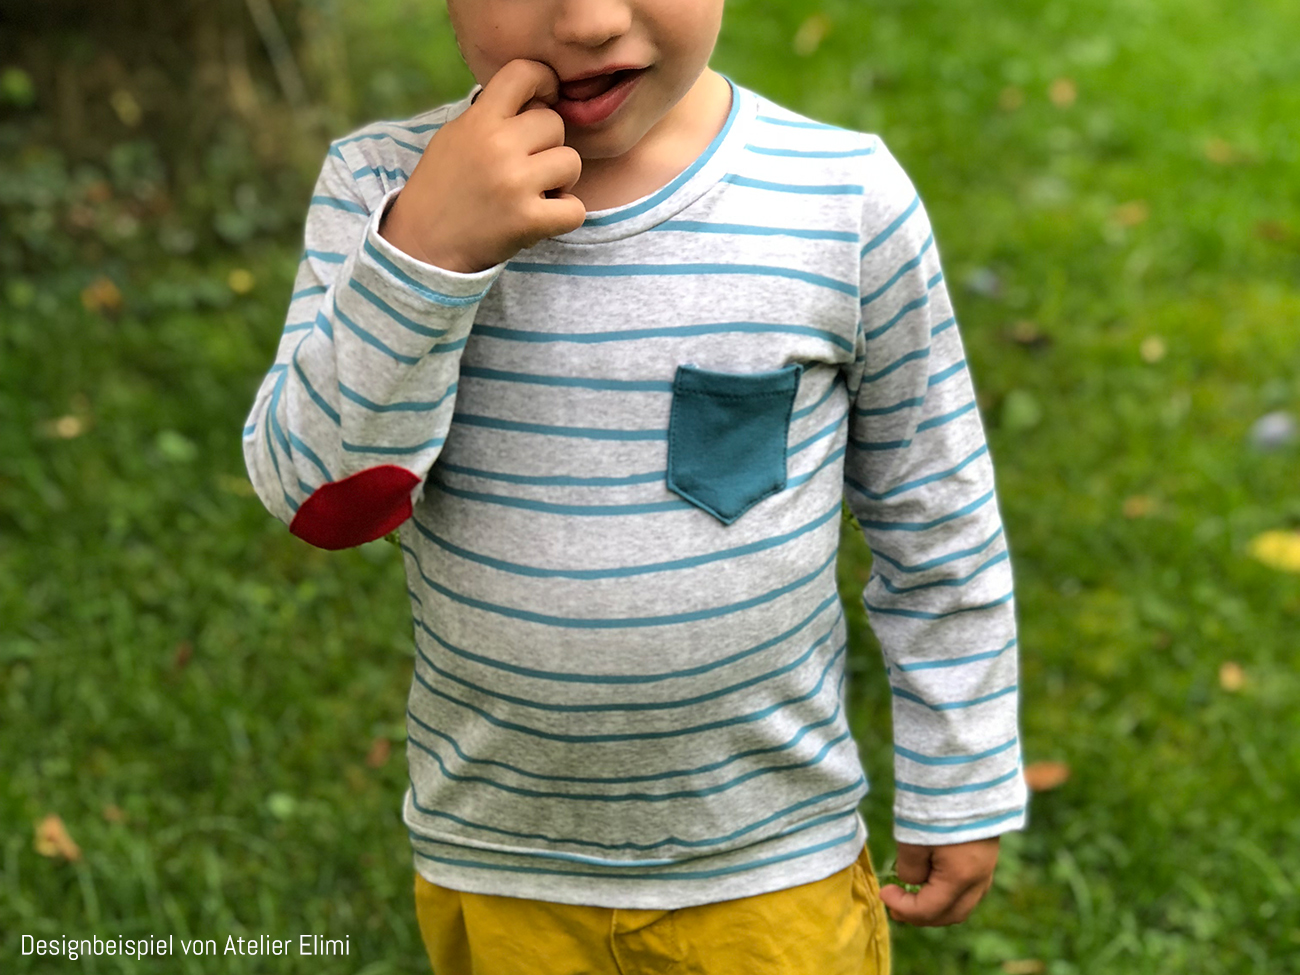 Neues Schnittmuster: Kinder-Shirts